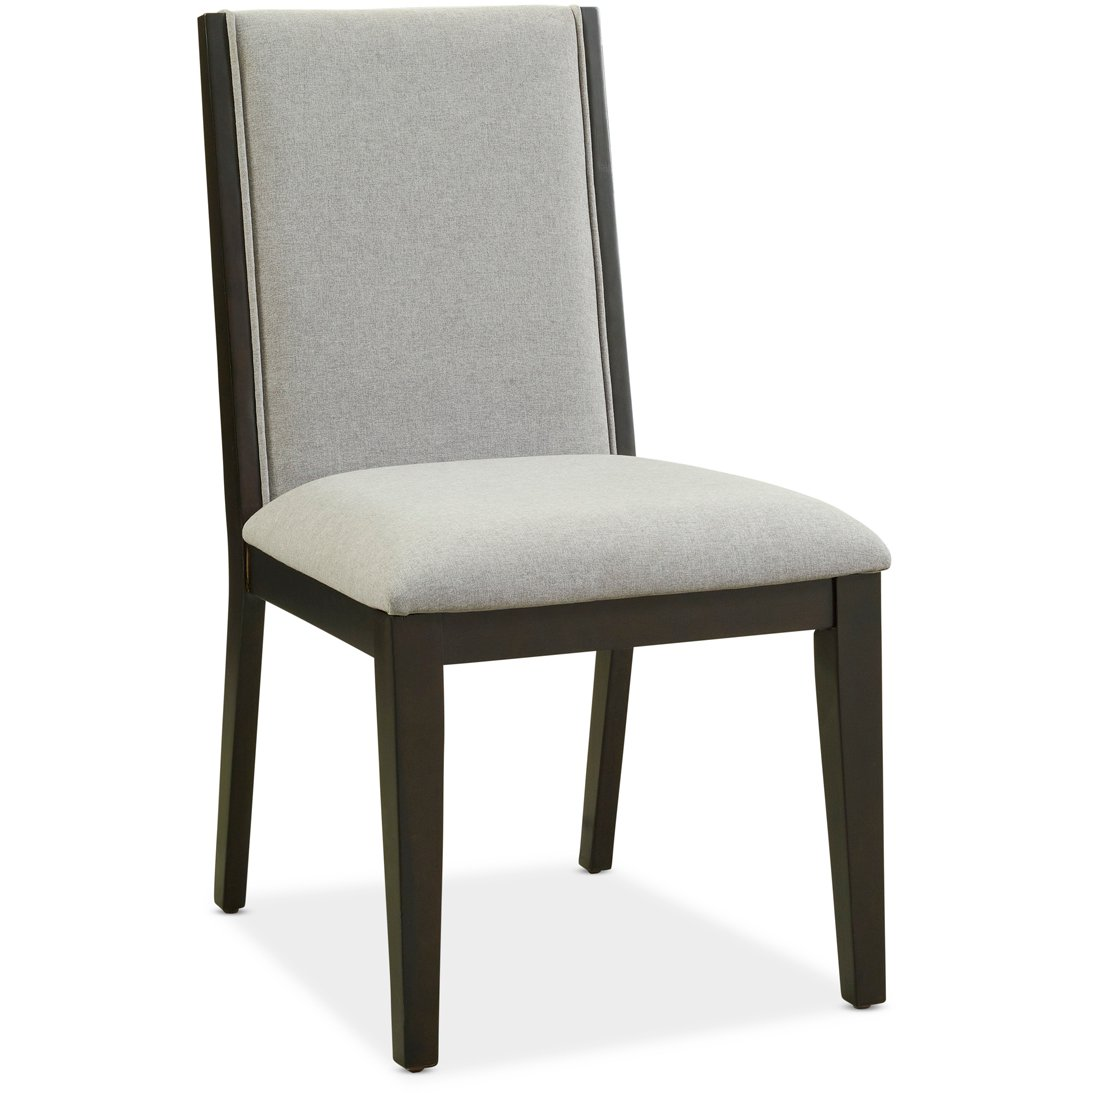 Gray Upholstered Dining Room Chair - Crosby Street